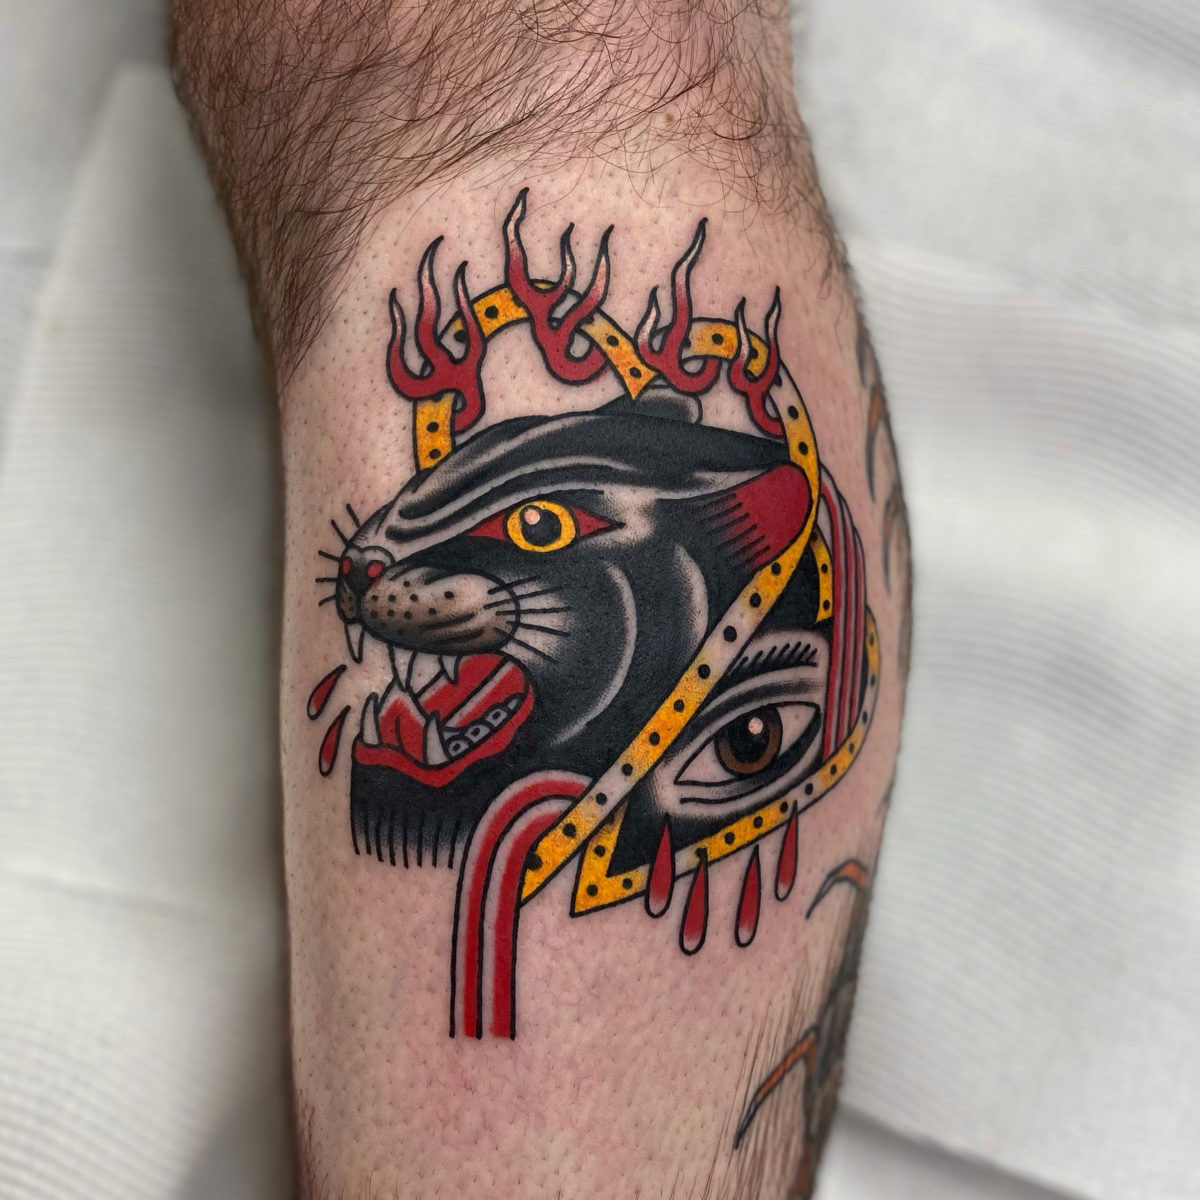 abstract traditional tattoo of panther with gold heart wreath, flames and an eye tattooed on lower leg